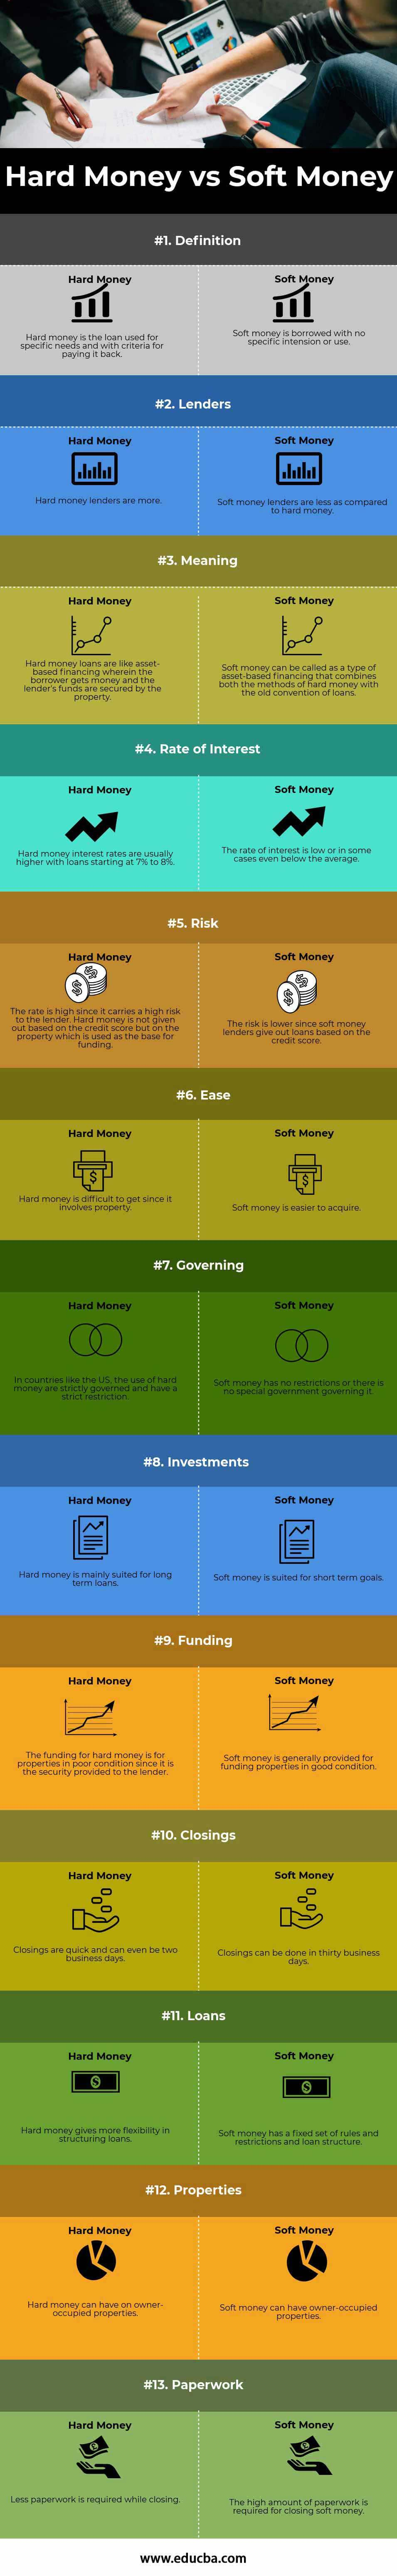 hard money vs soft money (info)